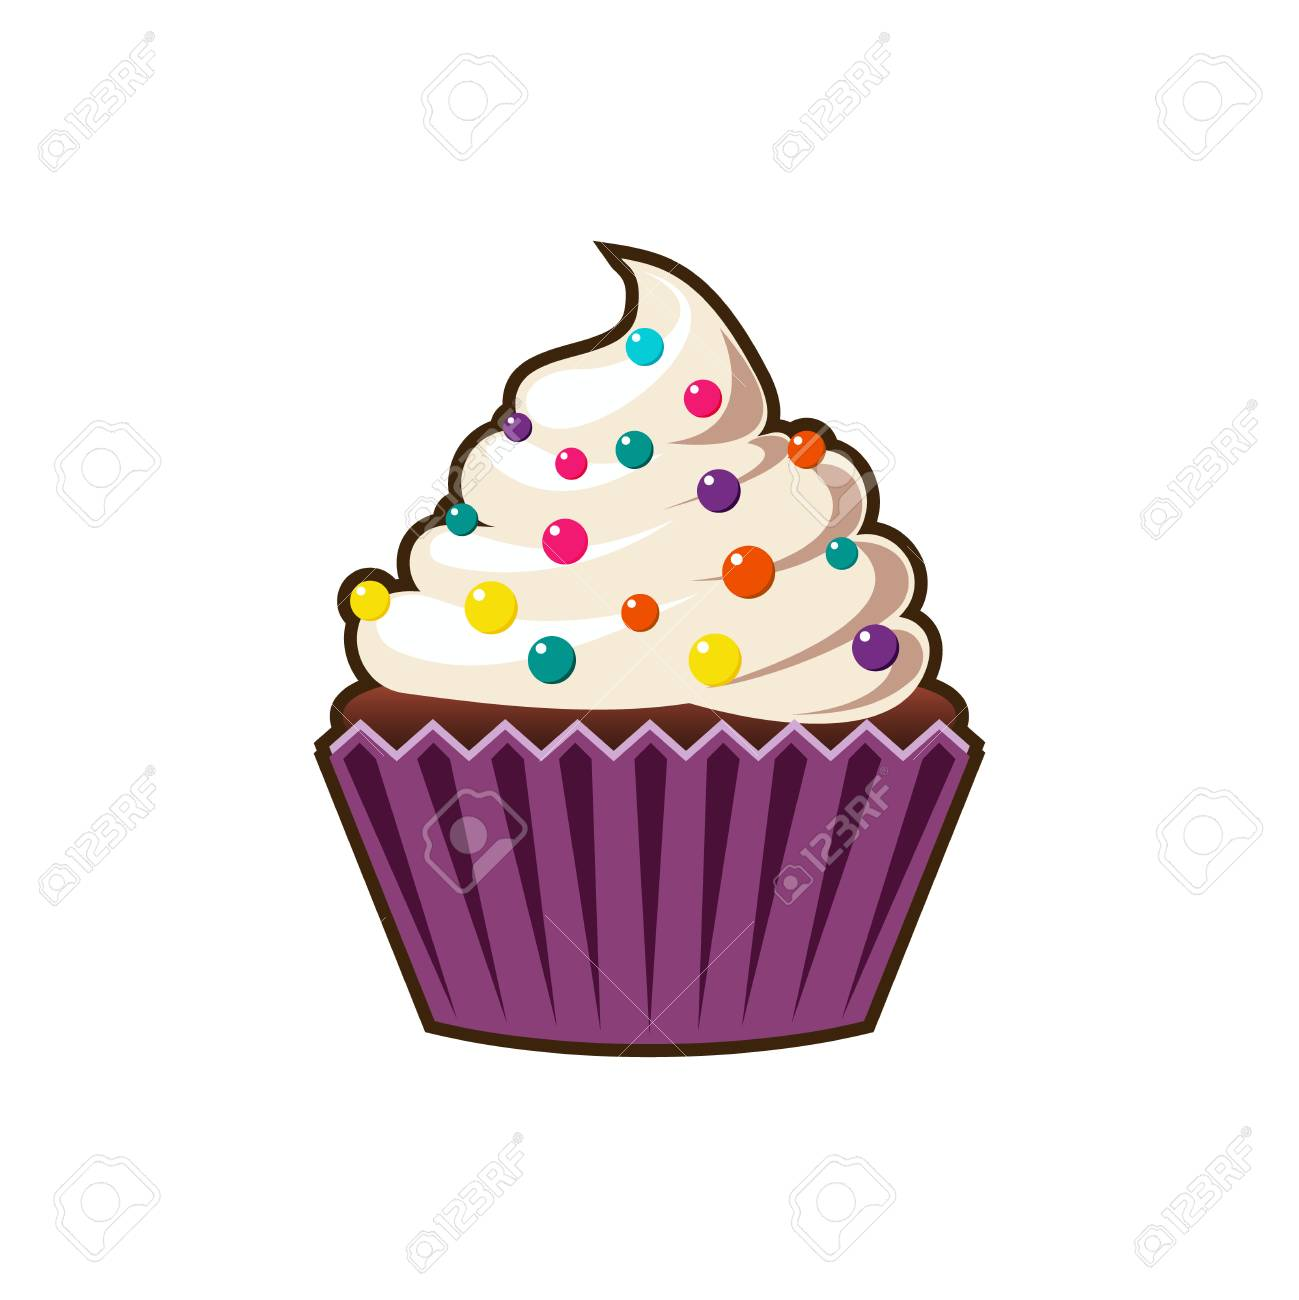 cupcakes cartoon icon royalty free cliparts vectors and stock rh 123rf com cartoon pictures cupcakes cupcake cartoon pictures free